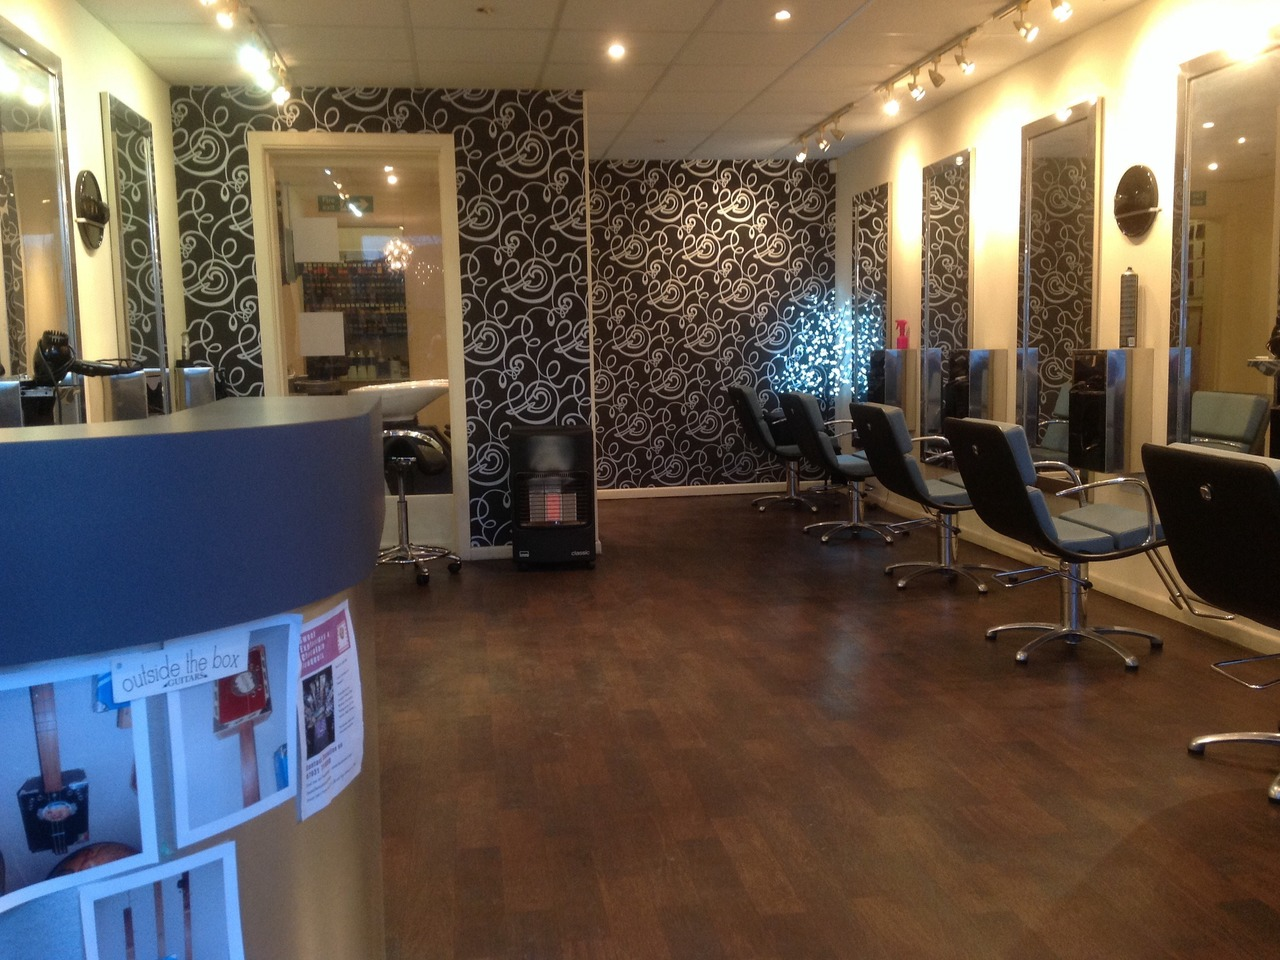 Self Serve Car Washes Near Me: Self Employed Salon Space Available To Rent Chairs For 2